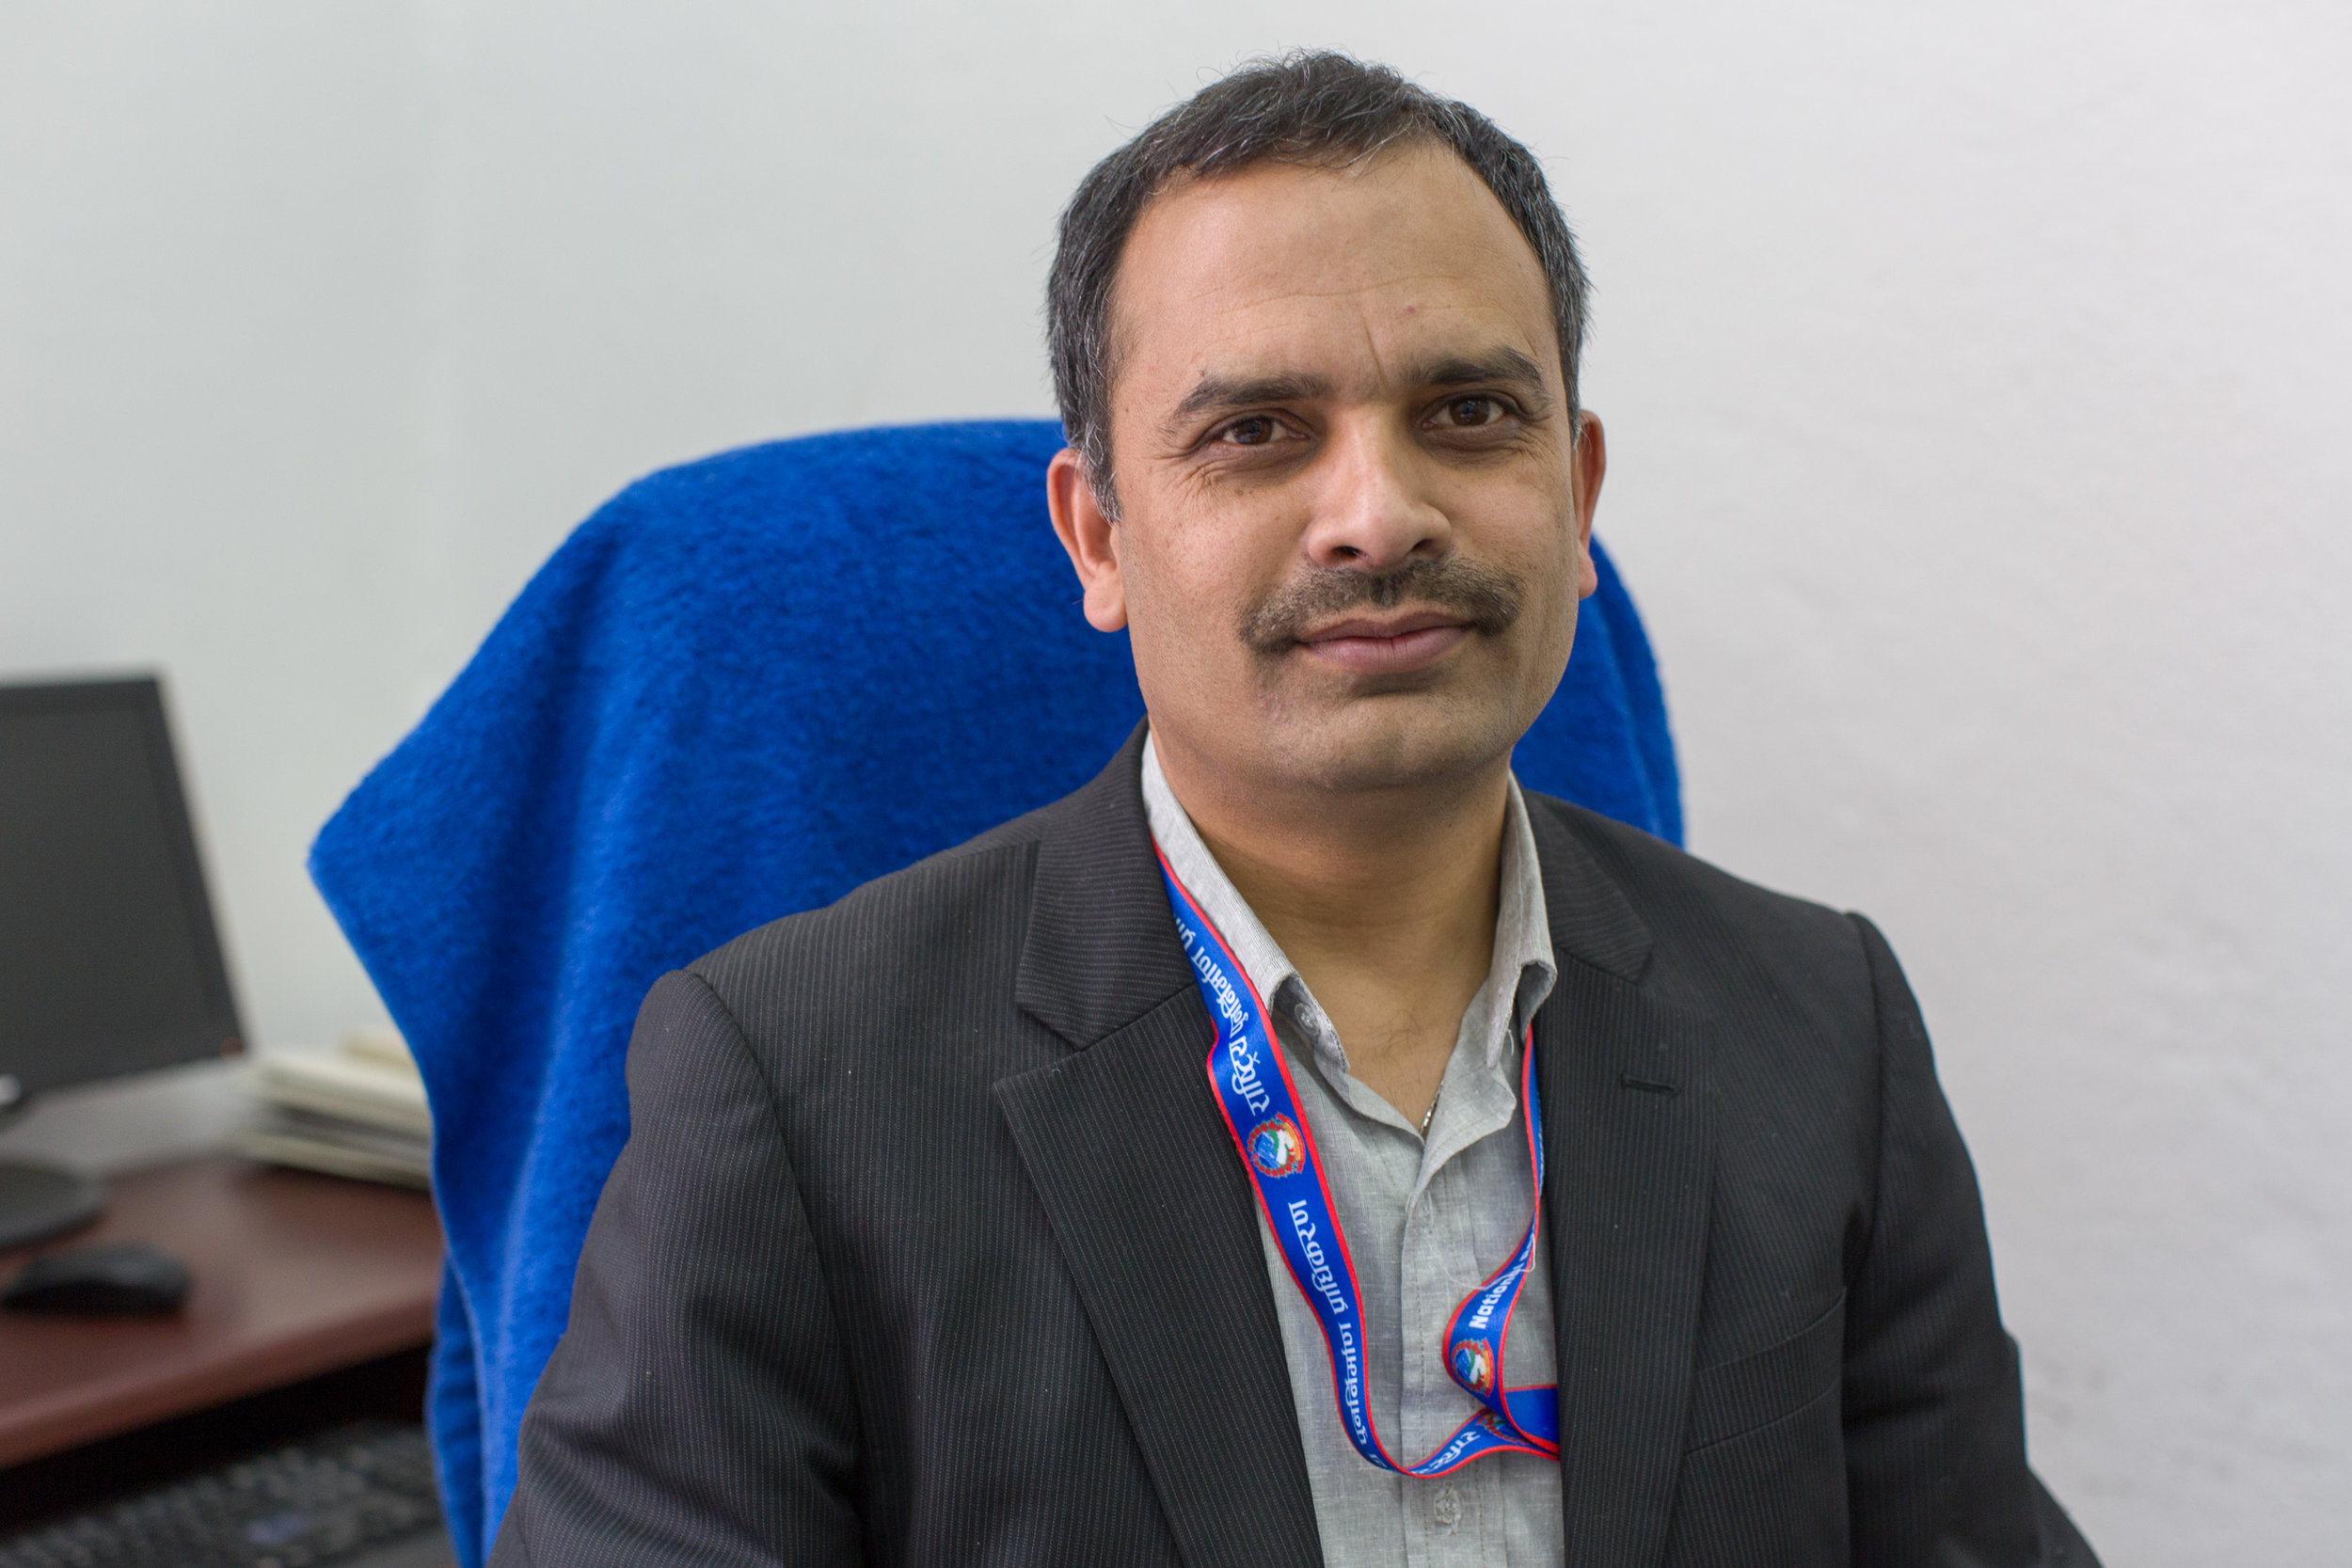 Mr. Yam Lal Bhoosal a joint secretary and spokesperson for NRA. So far, less than 1% of eligible families have received a 2nd tranche of funds to rebuild their homes, which is dependent on building a good foundation.